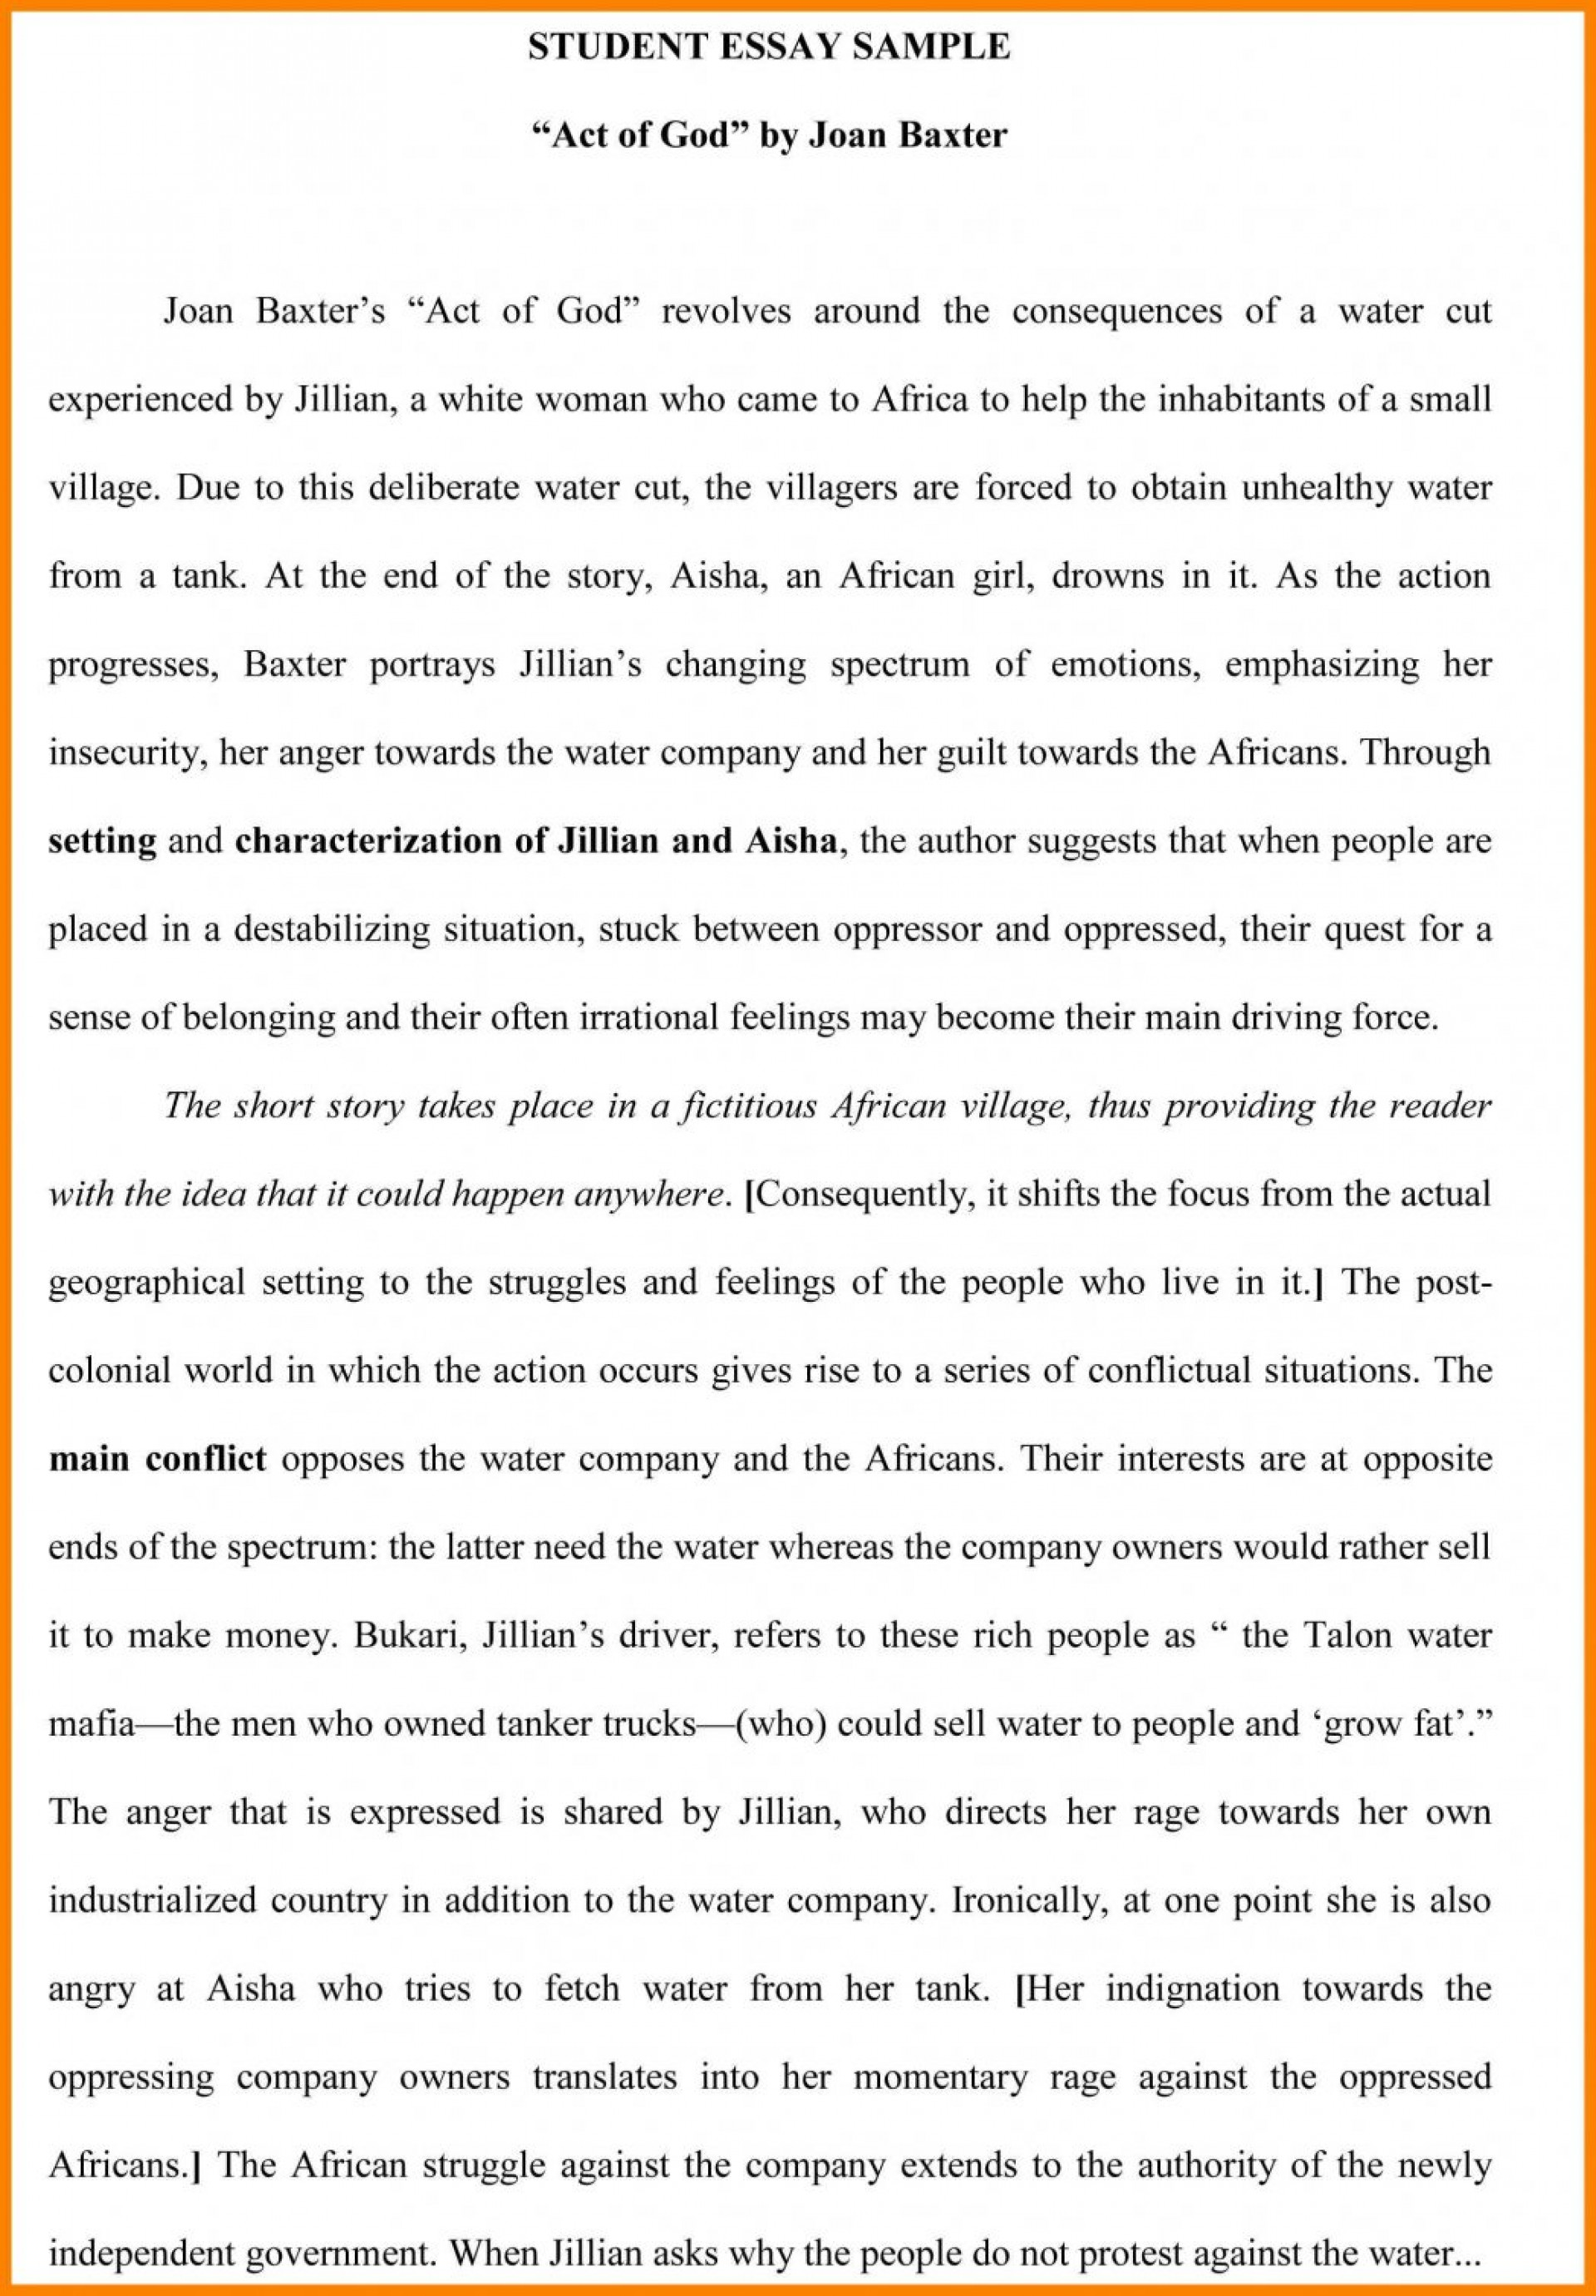 003 Essay Example Examples Of Process Essays Pdf How To Write Good Student Better Download Descriptive Great Law Steve Foster Lauren Starkey 1048x1508 Stirring Montaigne Deutsch English Penguin 1920